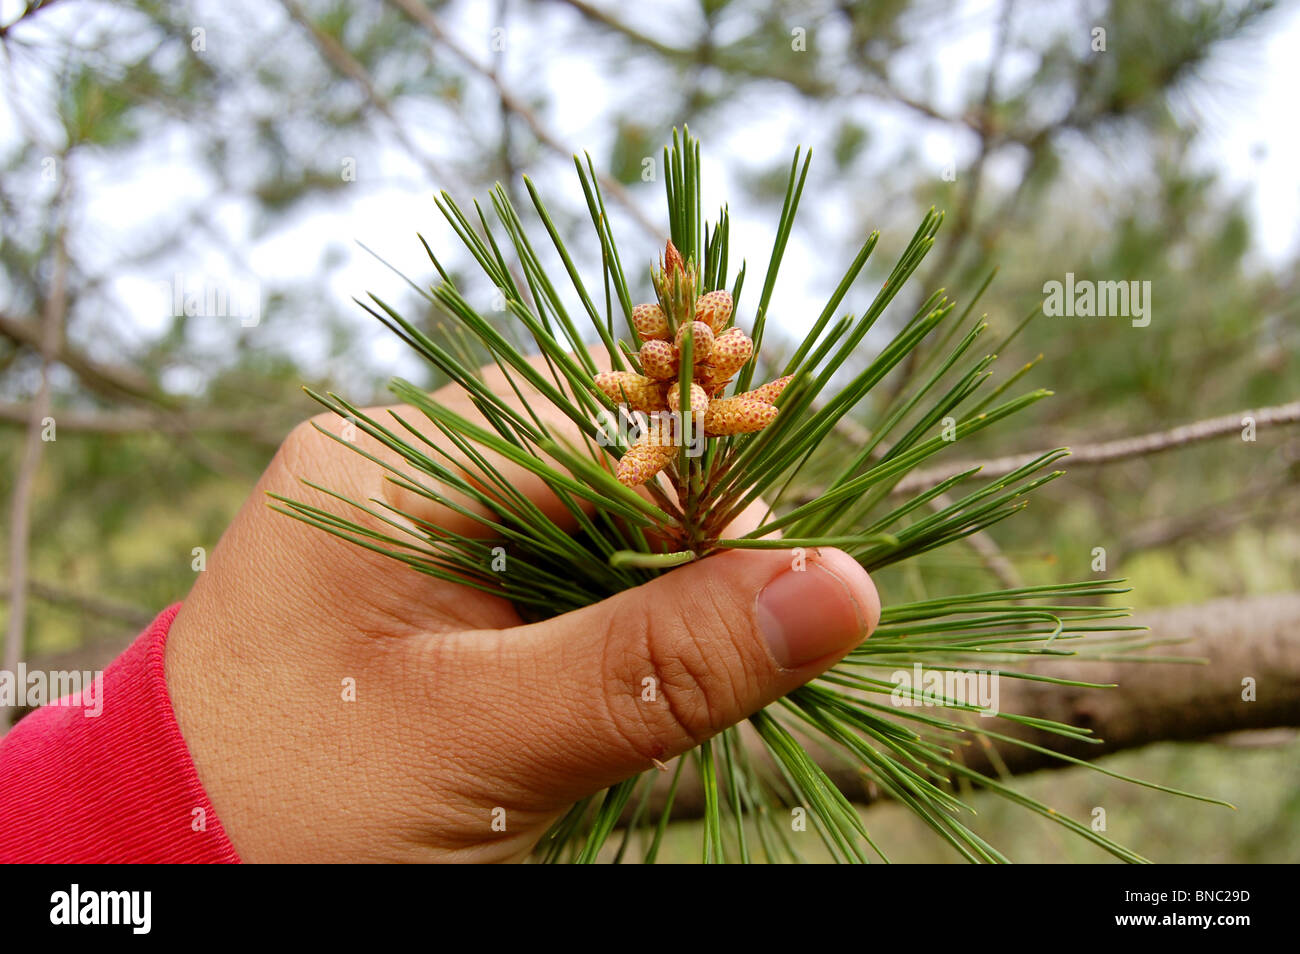 Cones of an Ocote tree (Pinus montezumae) in a park in Mexico - Stock Image